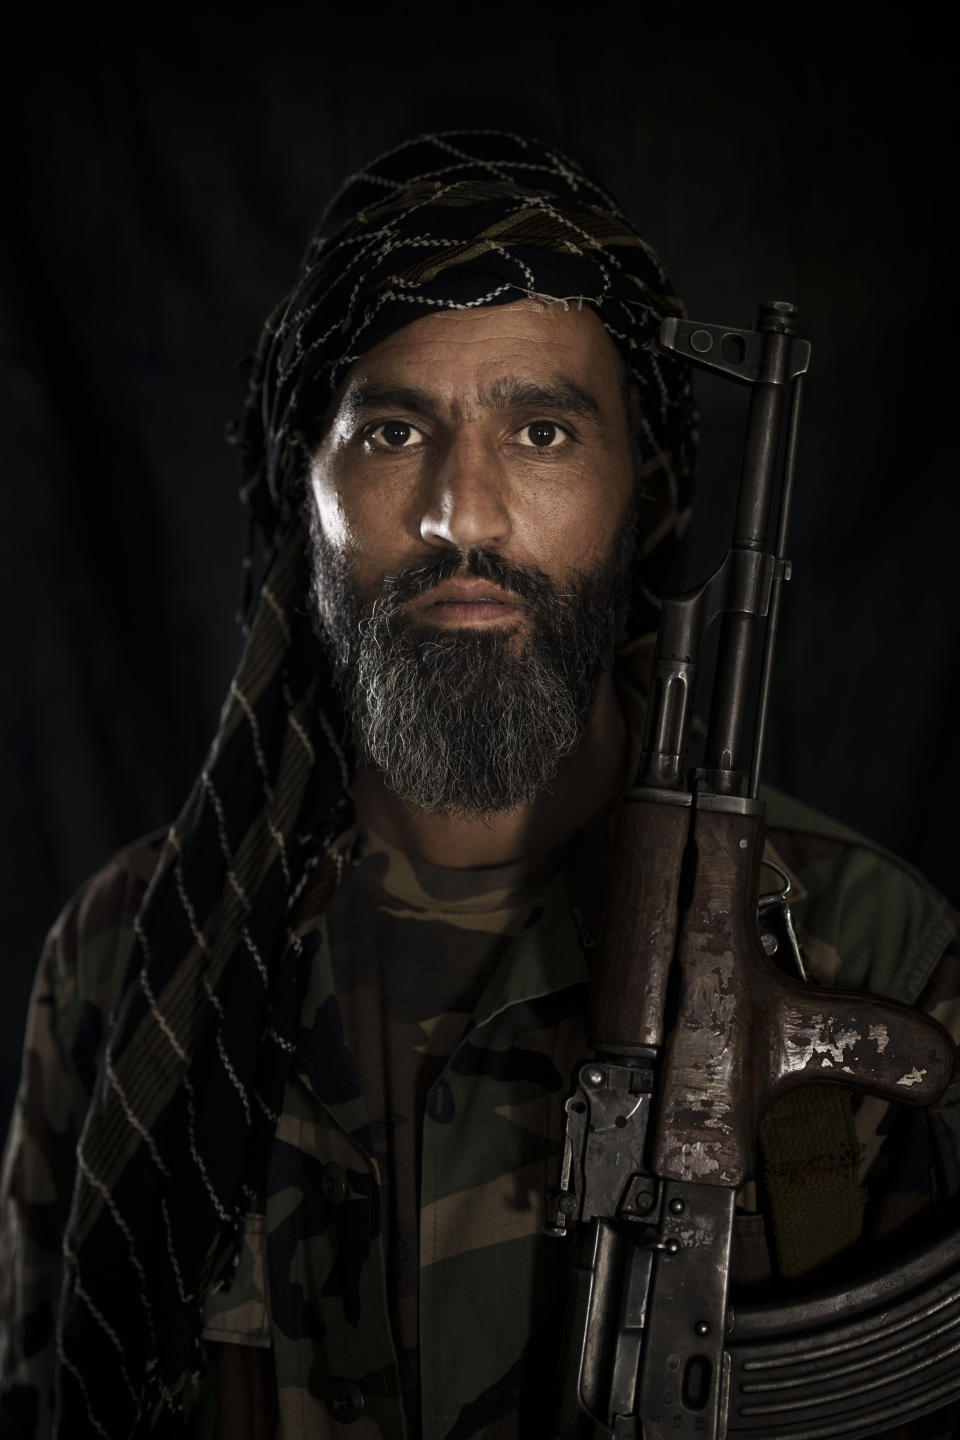 Taliban fighter Briali Badri poses for a photo at a police station in Kabul, Afghanistan, Thursday, Sept. 16, 2021. Badri is wearing the former Afghanistan army uniform he found left behind by soldiers of the previous government after the Taliban took control of Kabul. (AP Photo/Felipe Dana)